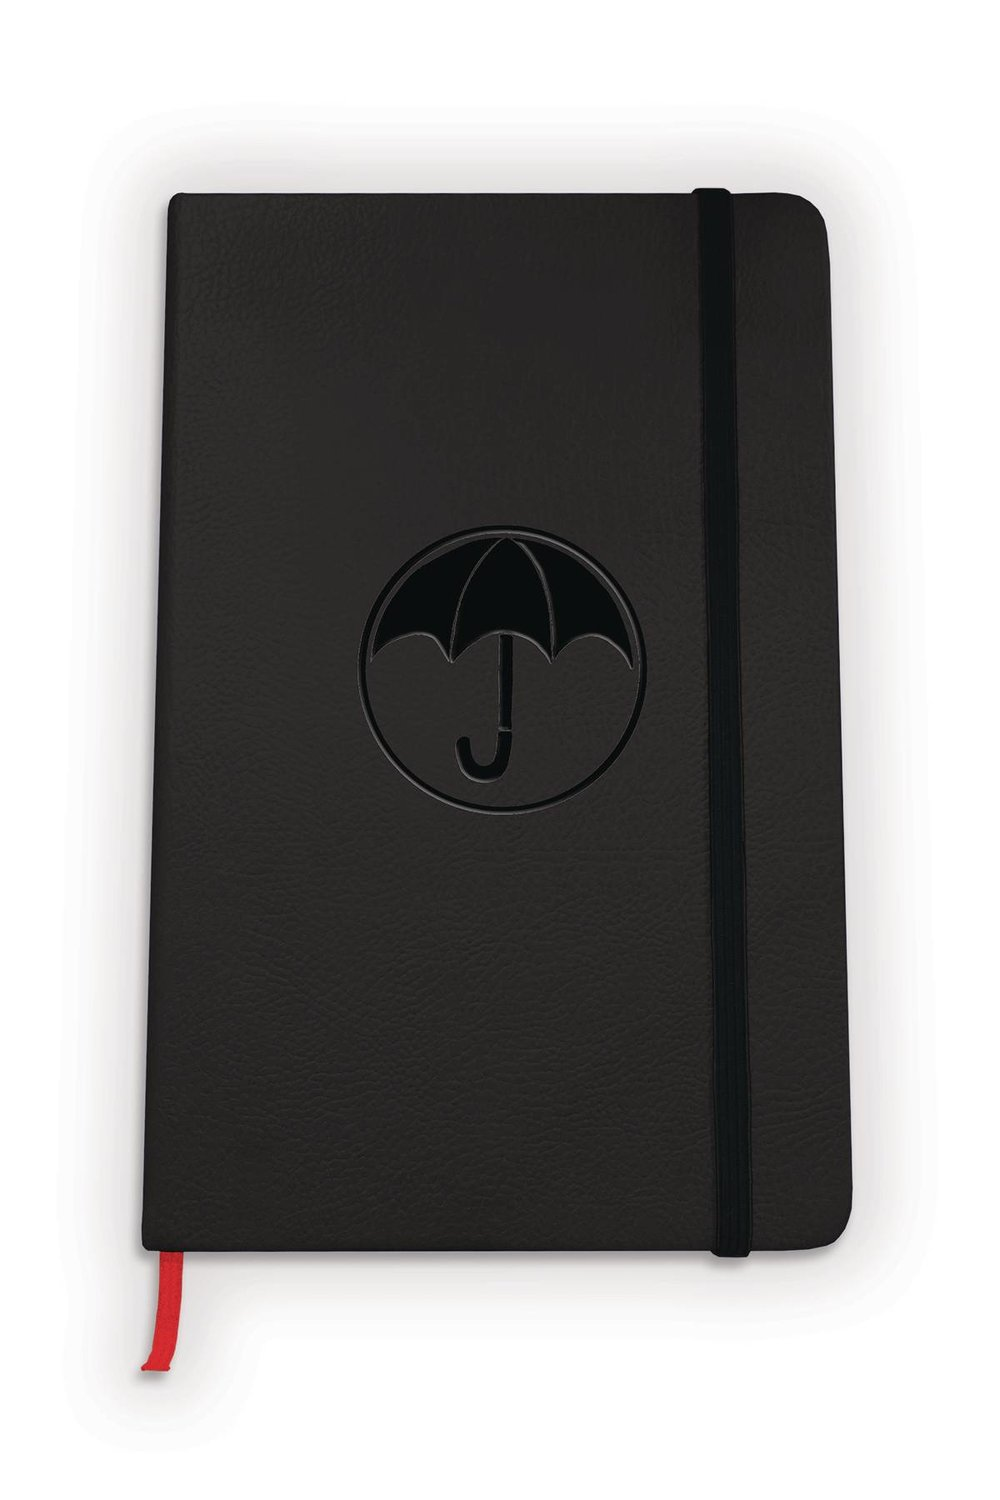 UMBRELLA ACADEMY JOURNAL.jpg